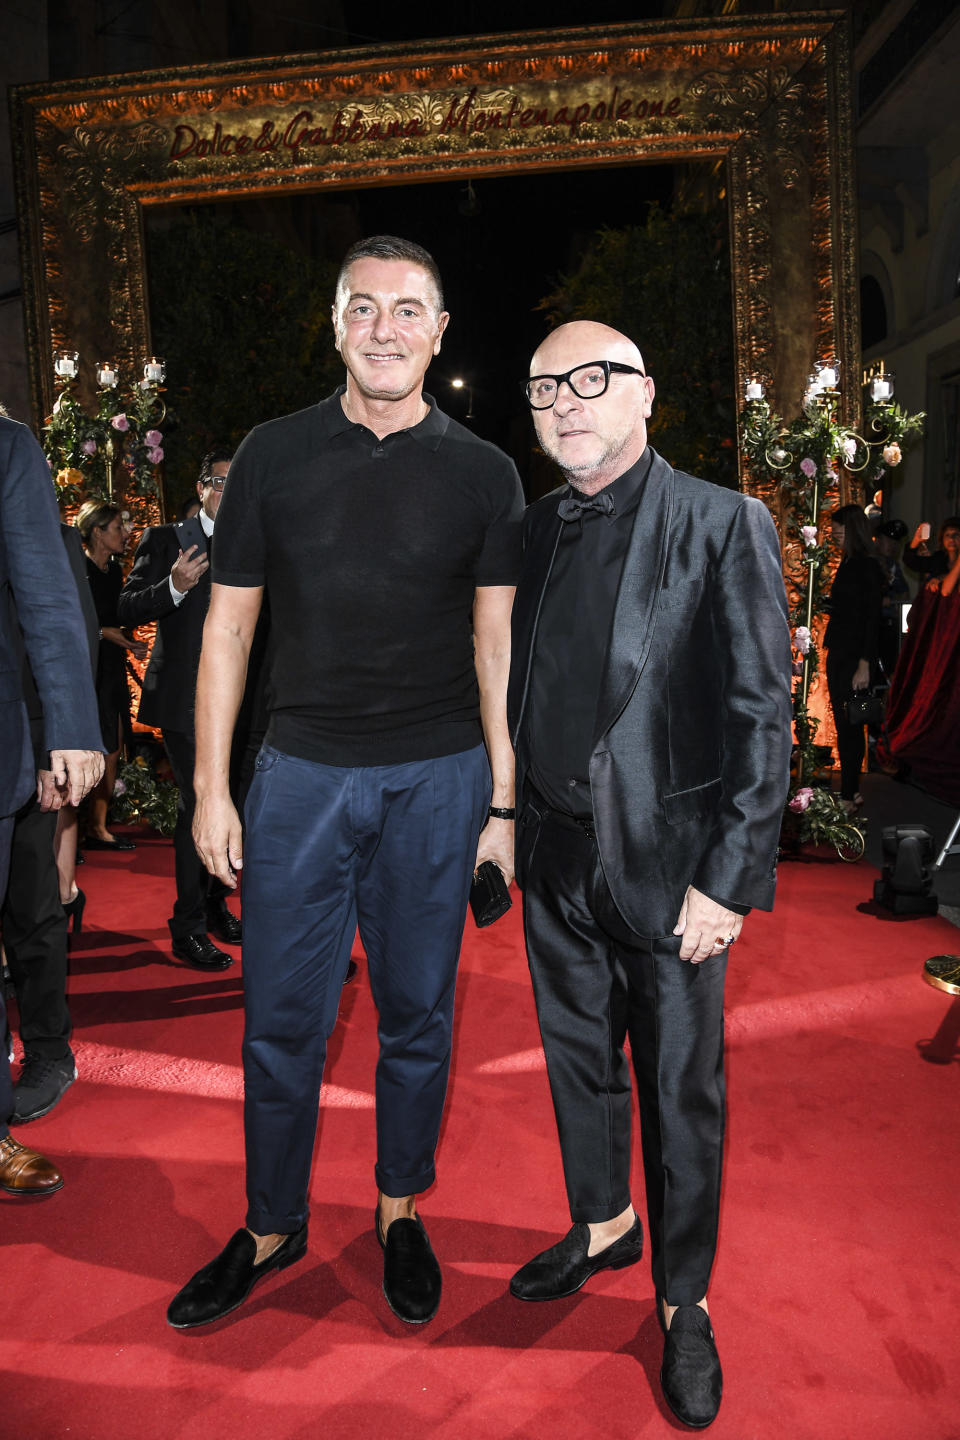 Designer Stefano Gabbana, left, is clarifying controversial comments he made about untraditional families. (Photo: Getty Images)